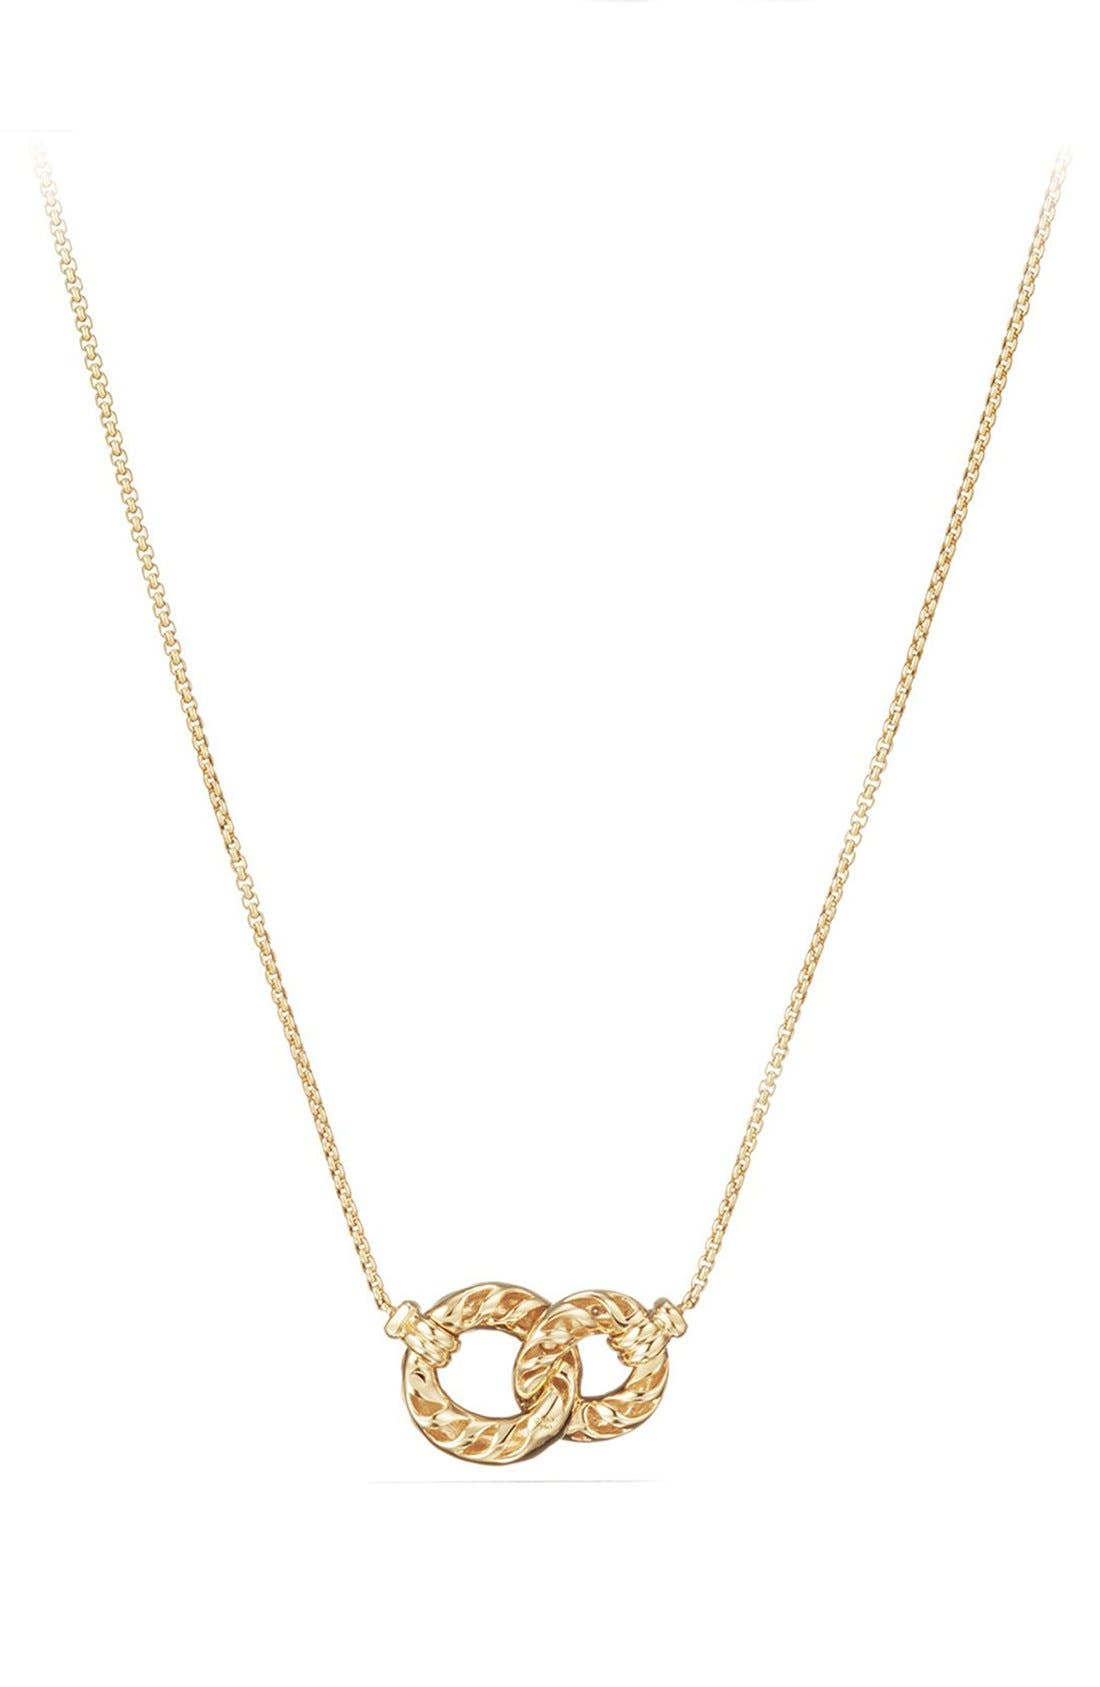 david yurman belmont extrasmall double curb link necklace with diamonds in 18k gold